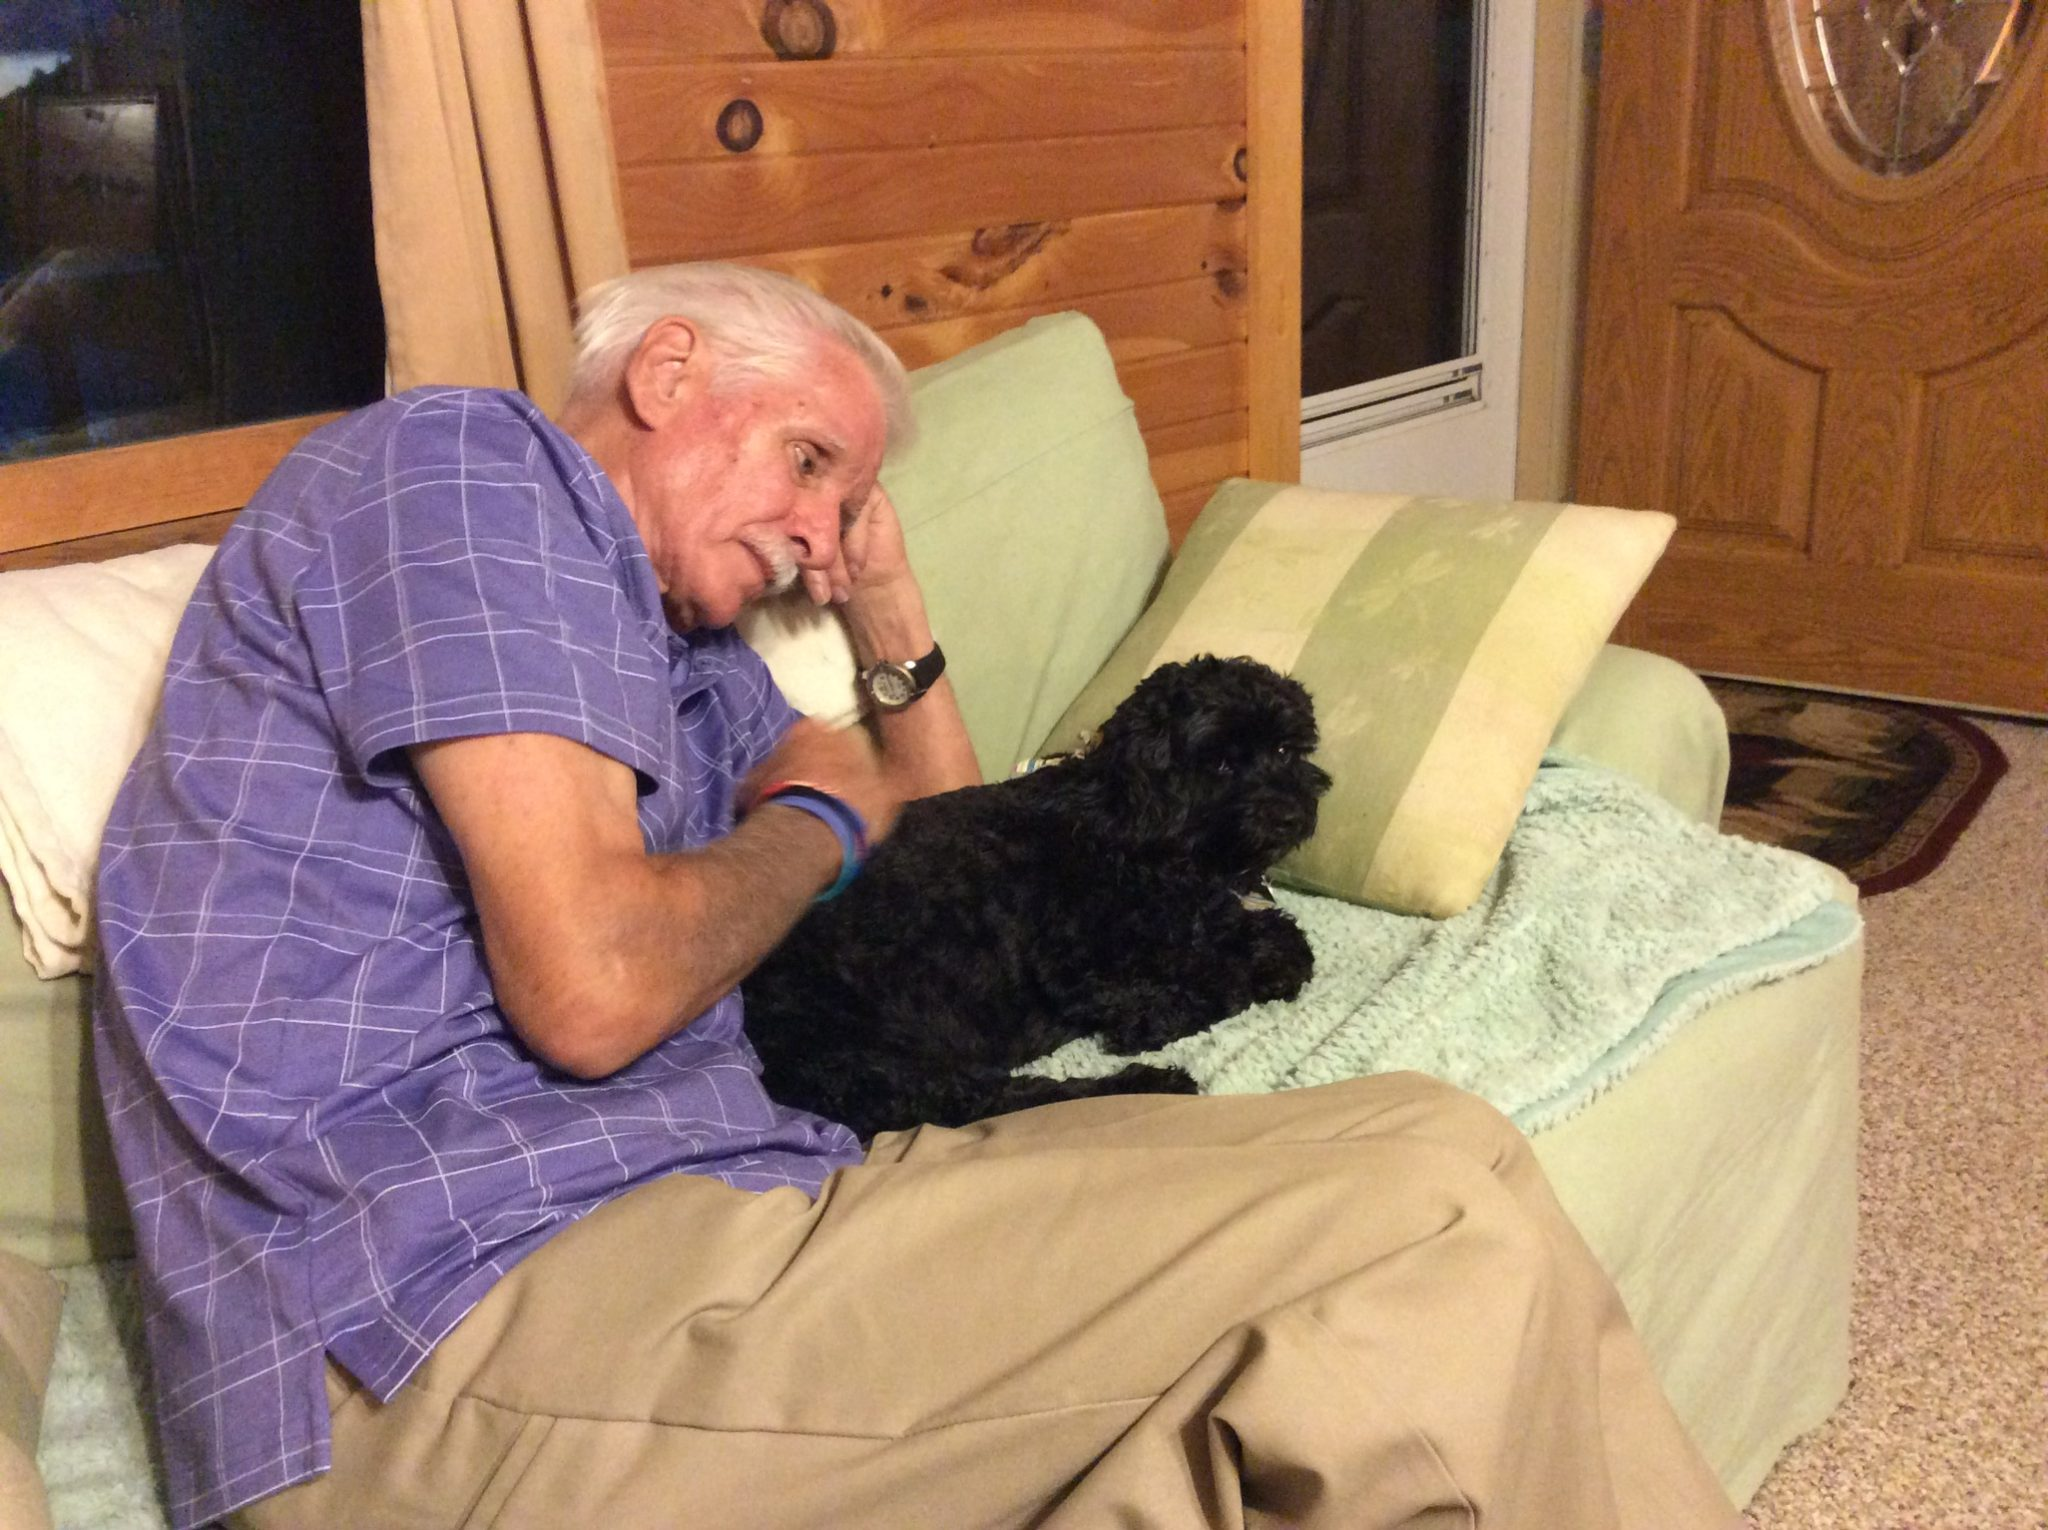 We are so grateful that Val and Bill were able to visit us last summer. This photo of him with our cockerpoo Holly captures his sweet soul so well. We will miss him so much. Our deepest condolences go out to Val and the whole family.